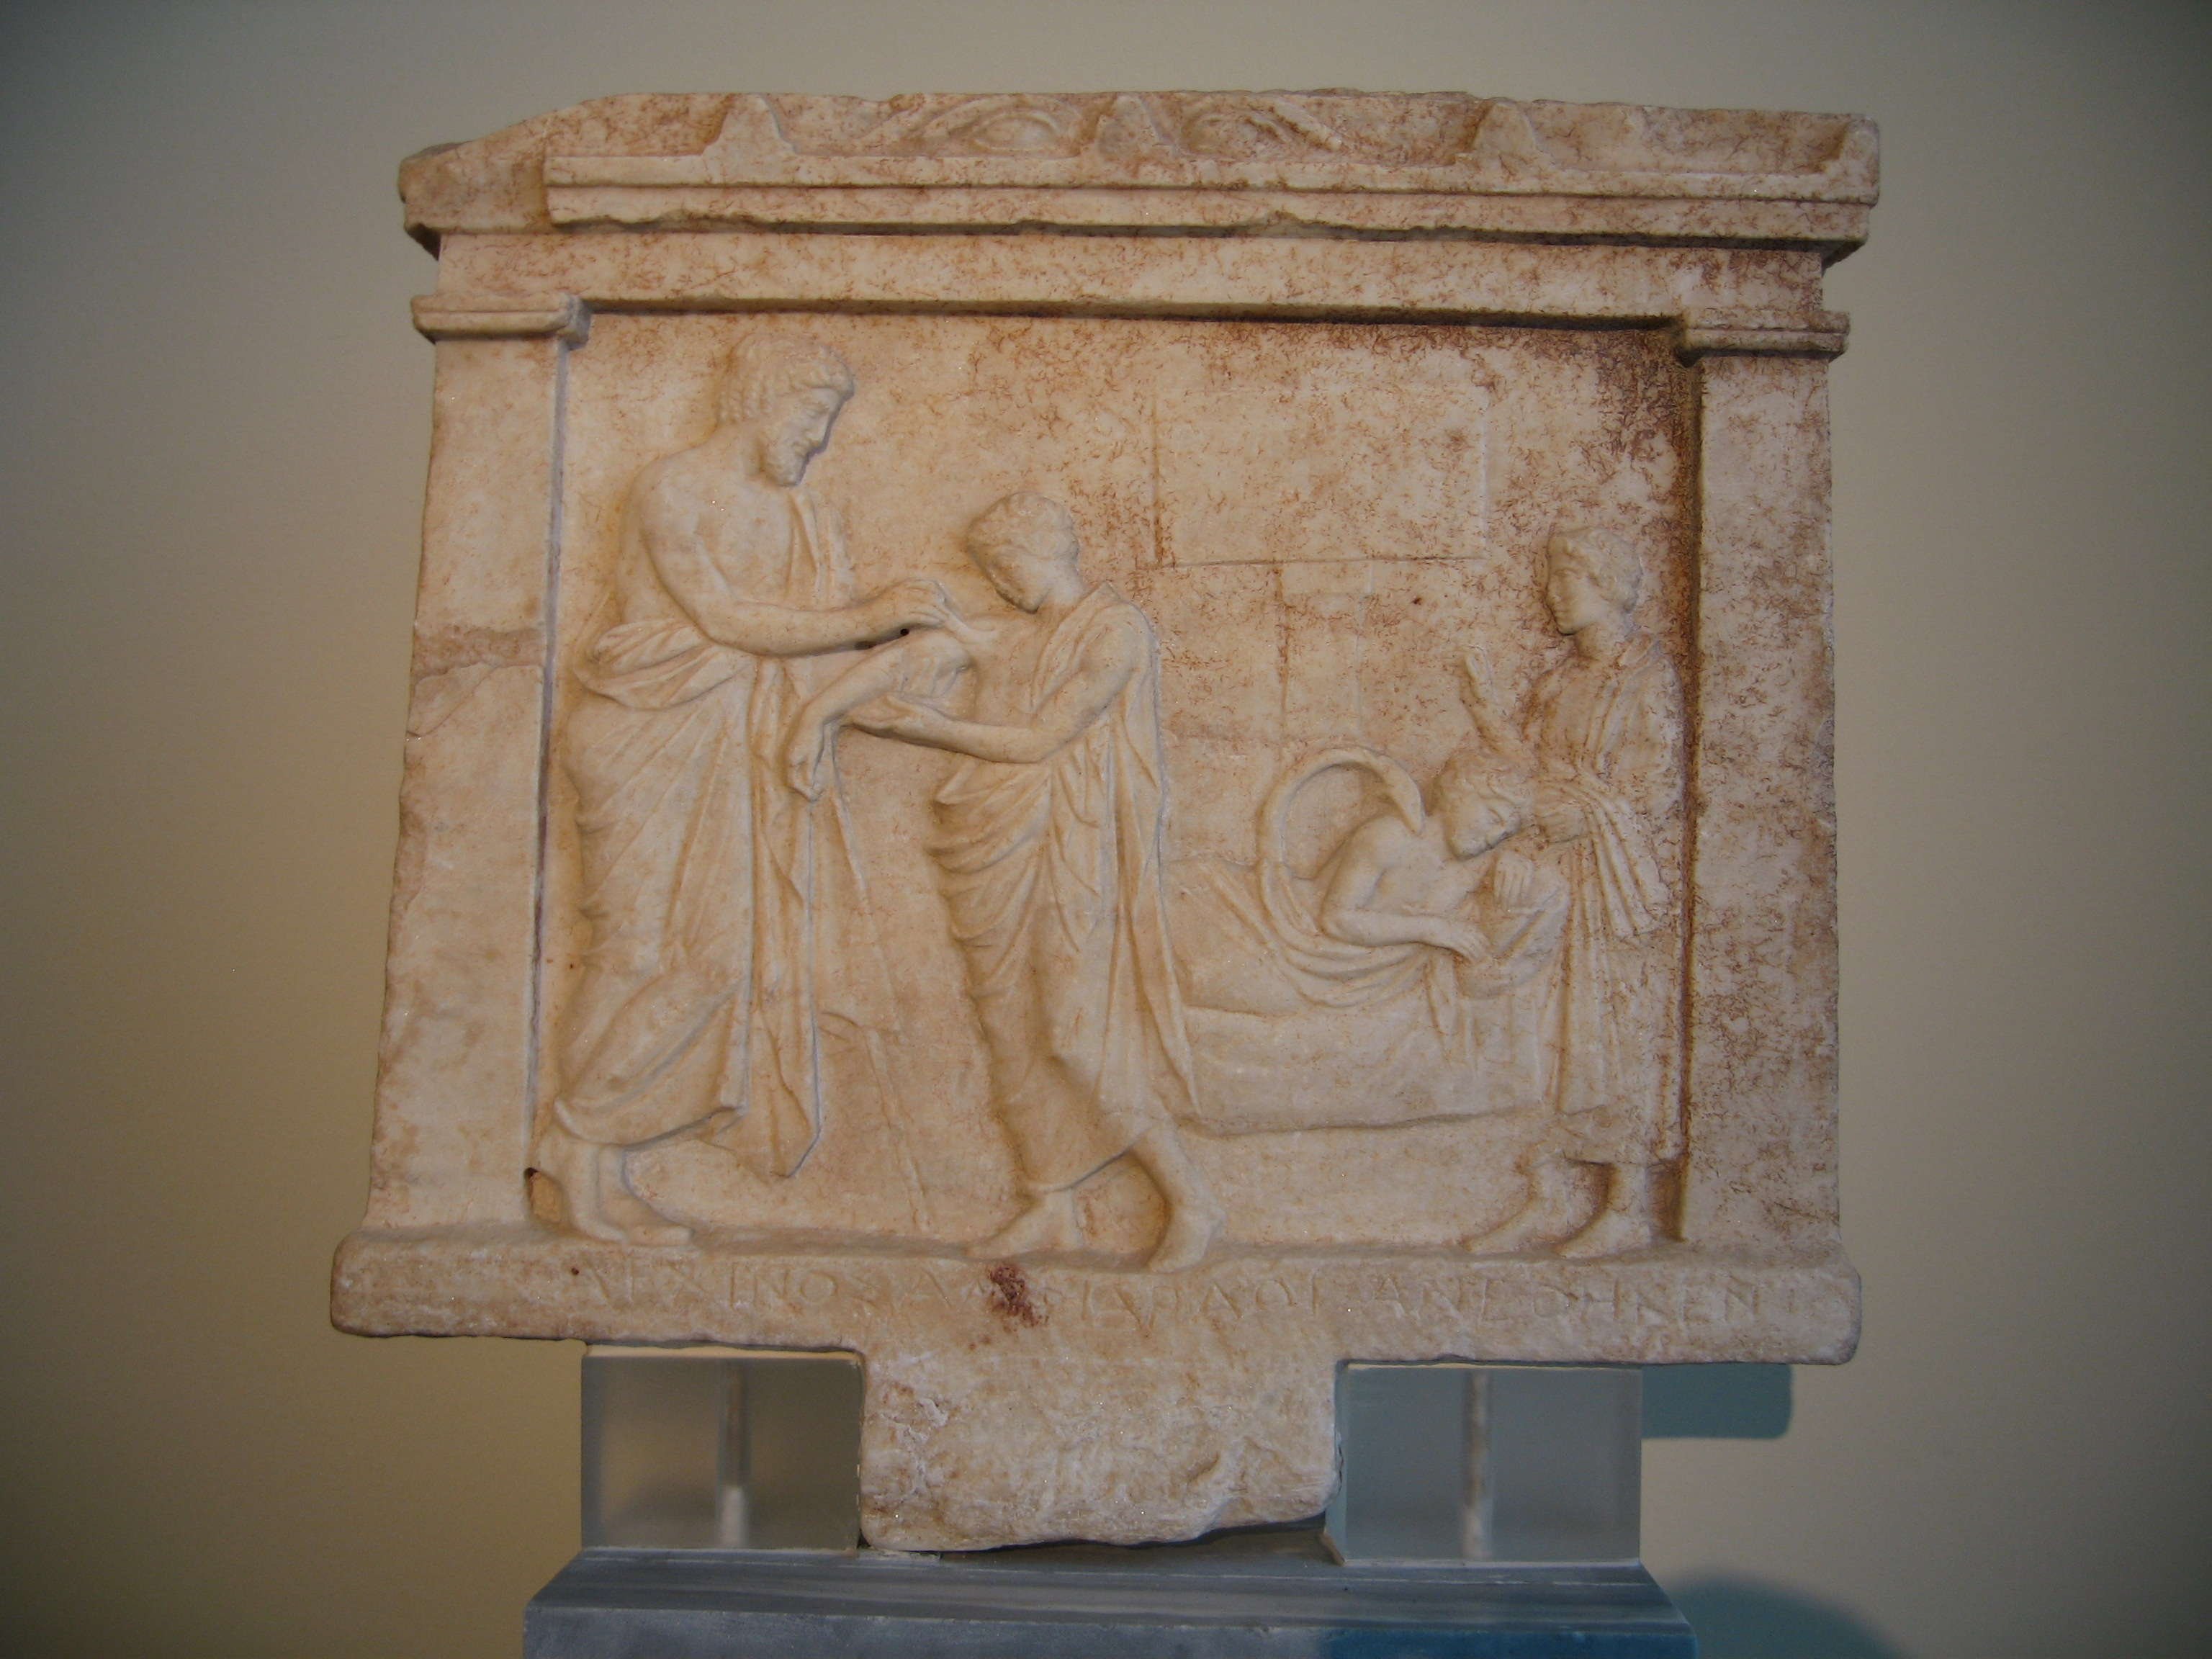 A stele of Amphiaraos (Athens National Archæological Museum No. 3369, photo Gil Renberg)